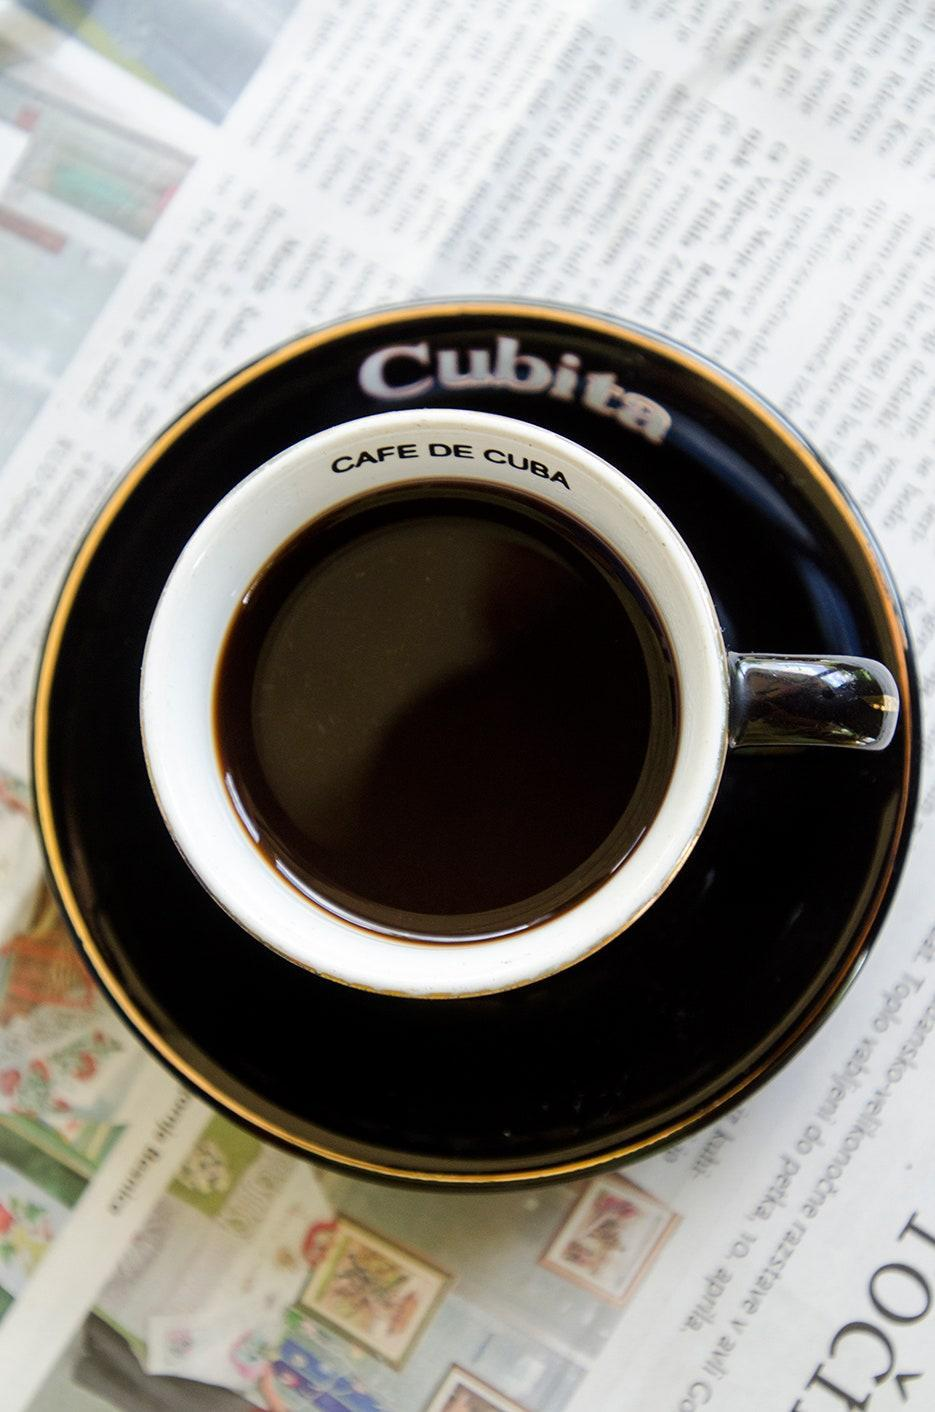 """<p>Unlike the Italians, Cubans like their coffee sweet, very sweet. In a Café Cubano, espresso is brewed directly onto sugar or the sugar itself is combined with grounds prior to brewing. Cap it off with steamed milk to make it a cortadito (not unlike a cortado, but sweeter.) You can find Café Cubanos in places with Cuban American communities, like <a href=""""https://www.cntraveler.com/destinations/miami?mbid=synd_yahoo_rss"""" rel=""""nofollow noopener"""" target=""""_blank"""" data-ylk=""""slk:Miami"""" class=""""link rapid-noclick-resp"""">Miami</a>, Tampa, and the <a href=""""https://www.cntraveler.com/destinations/key-west?mbid=synd_yahoo_rss"""" rel=""""nofollow noopener"""" target=""""_blank"""" data-ylk=""""slk:Florida Keys."""" class=""""link rapid-noclick-resp"""">Florida Keys.</a></p> <p>Try it at home: <a href=""""https://amzn.to/2RKIn9c"""" rel=""""nofollow noopener"""" target=""""_blank"""" data-ylk=""""slk:$159 Flair Manual Espresso Maker at amazon.com"""" class=""""link rapid-noclick-resp"""">$159 Flair Manual Espresso Maker at amazon.com</a></p>"""